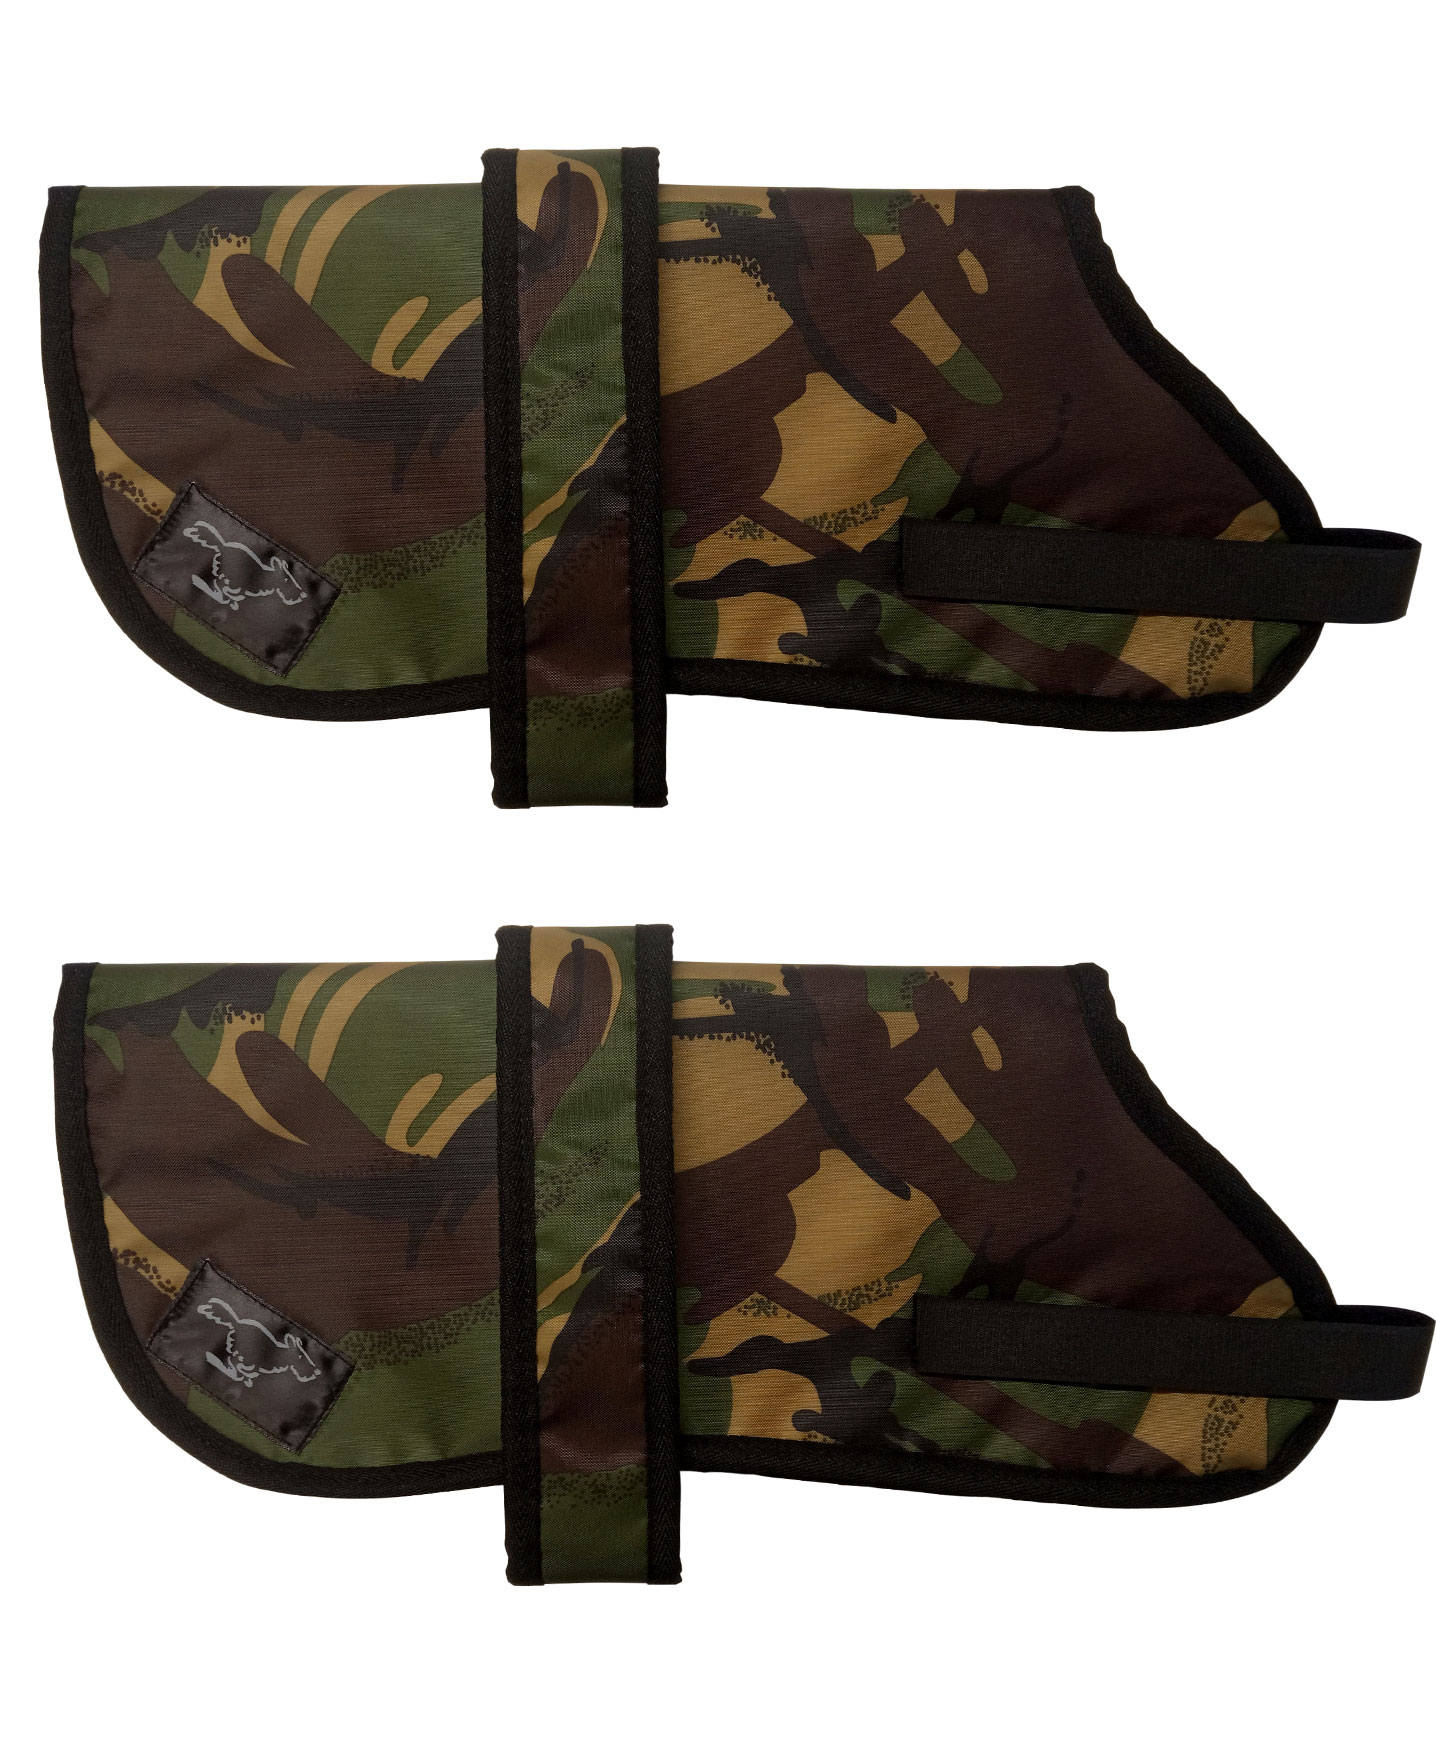 Jack Russell Terrier Personalised Waterproof Dog Coats | Camouflage Design| Sherpa Fleece Lining